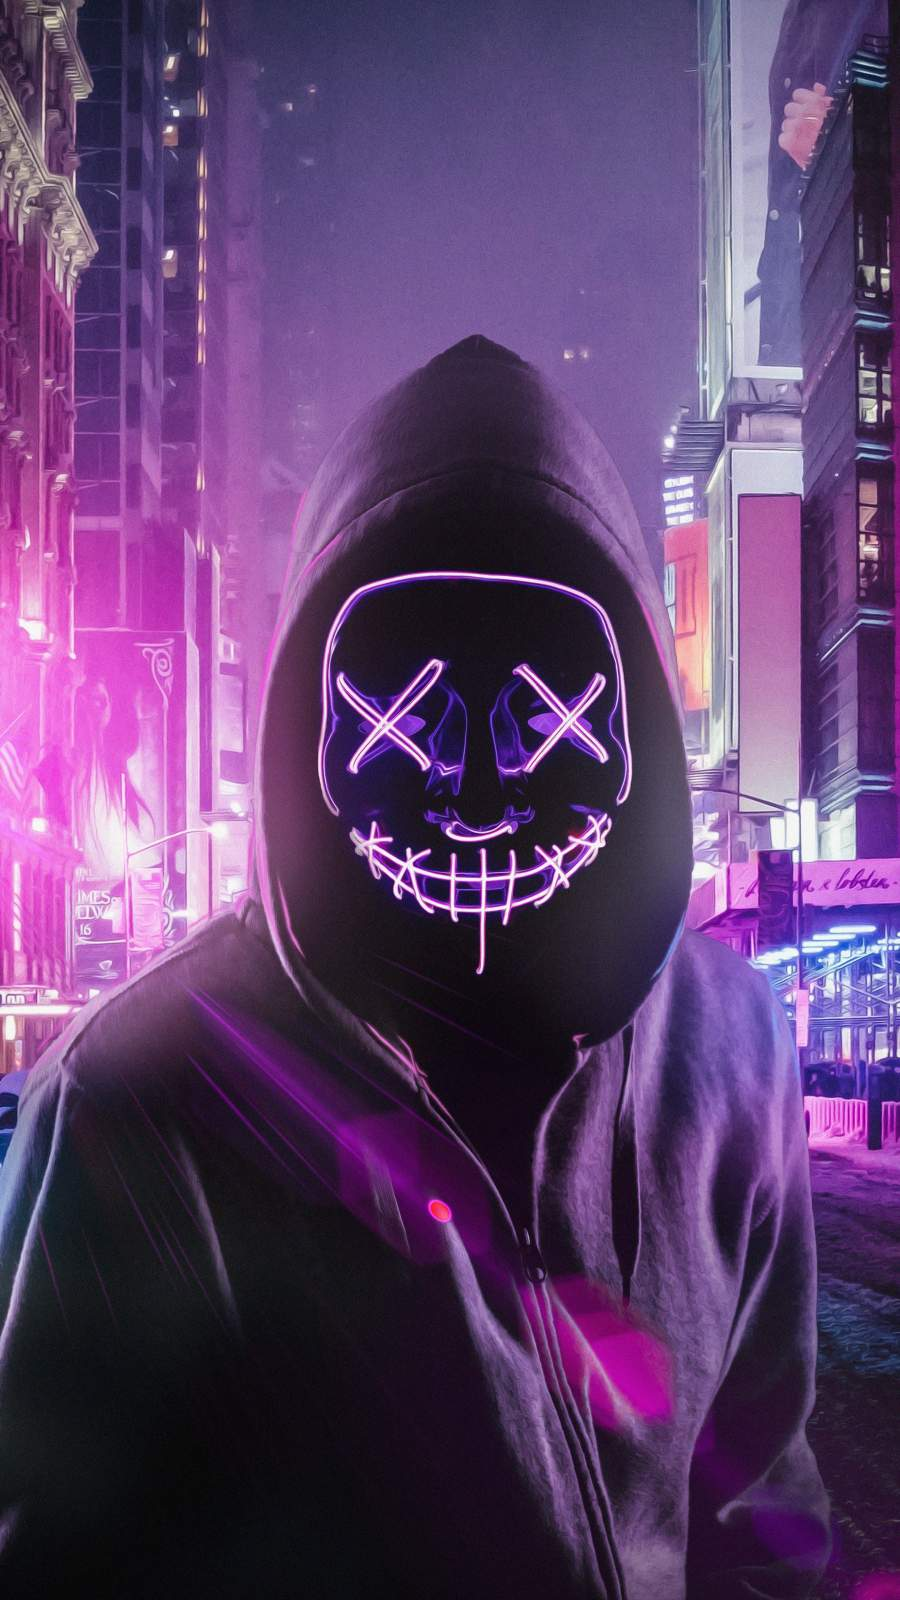 Hoodie Neon Stitched Mask Guy